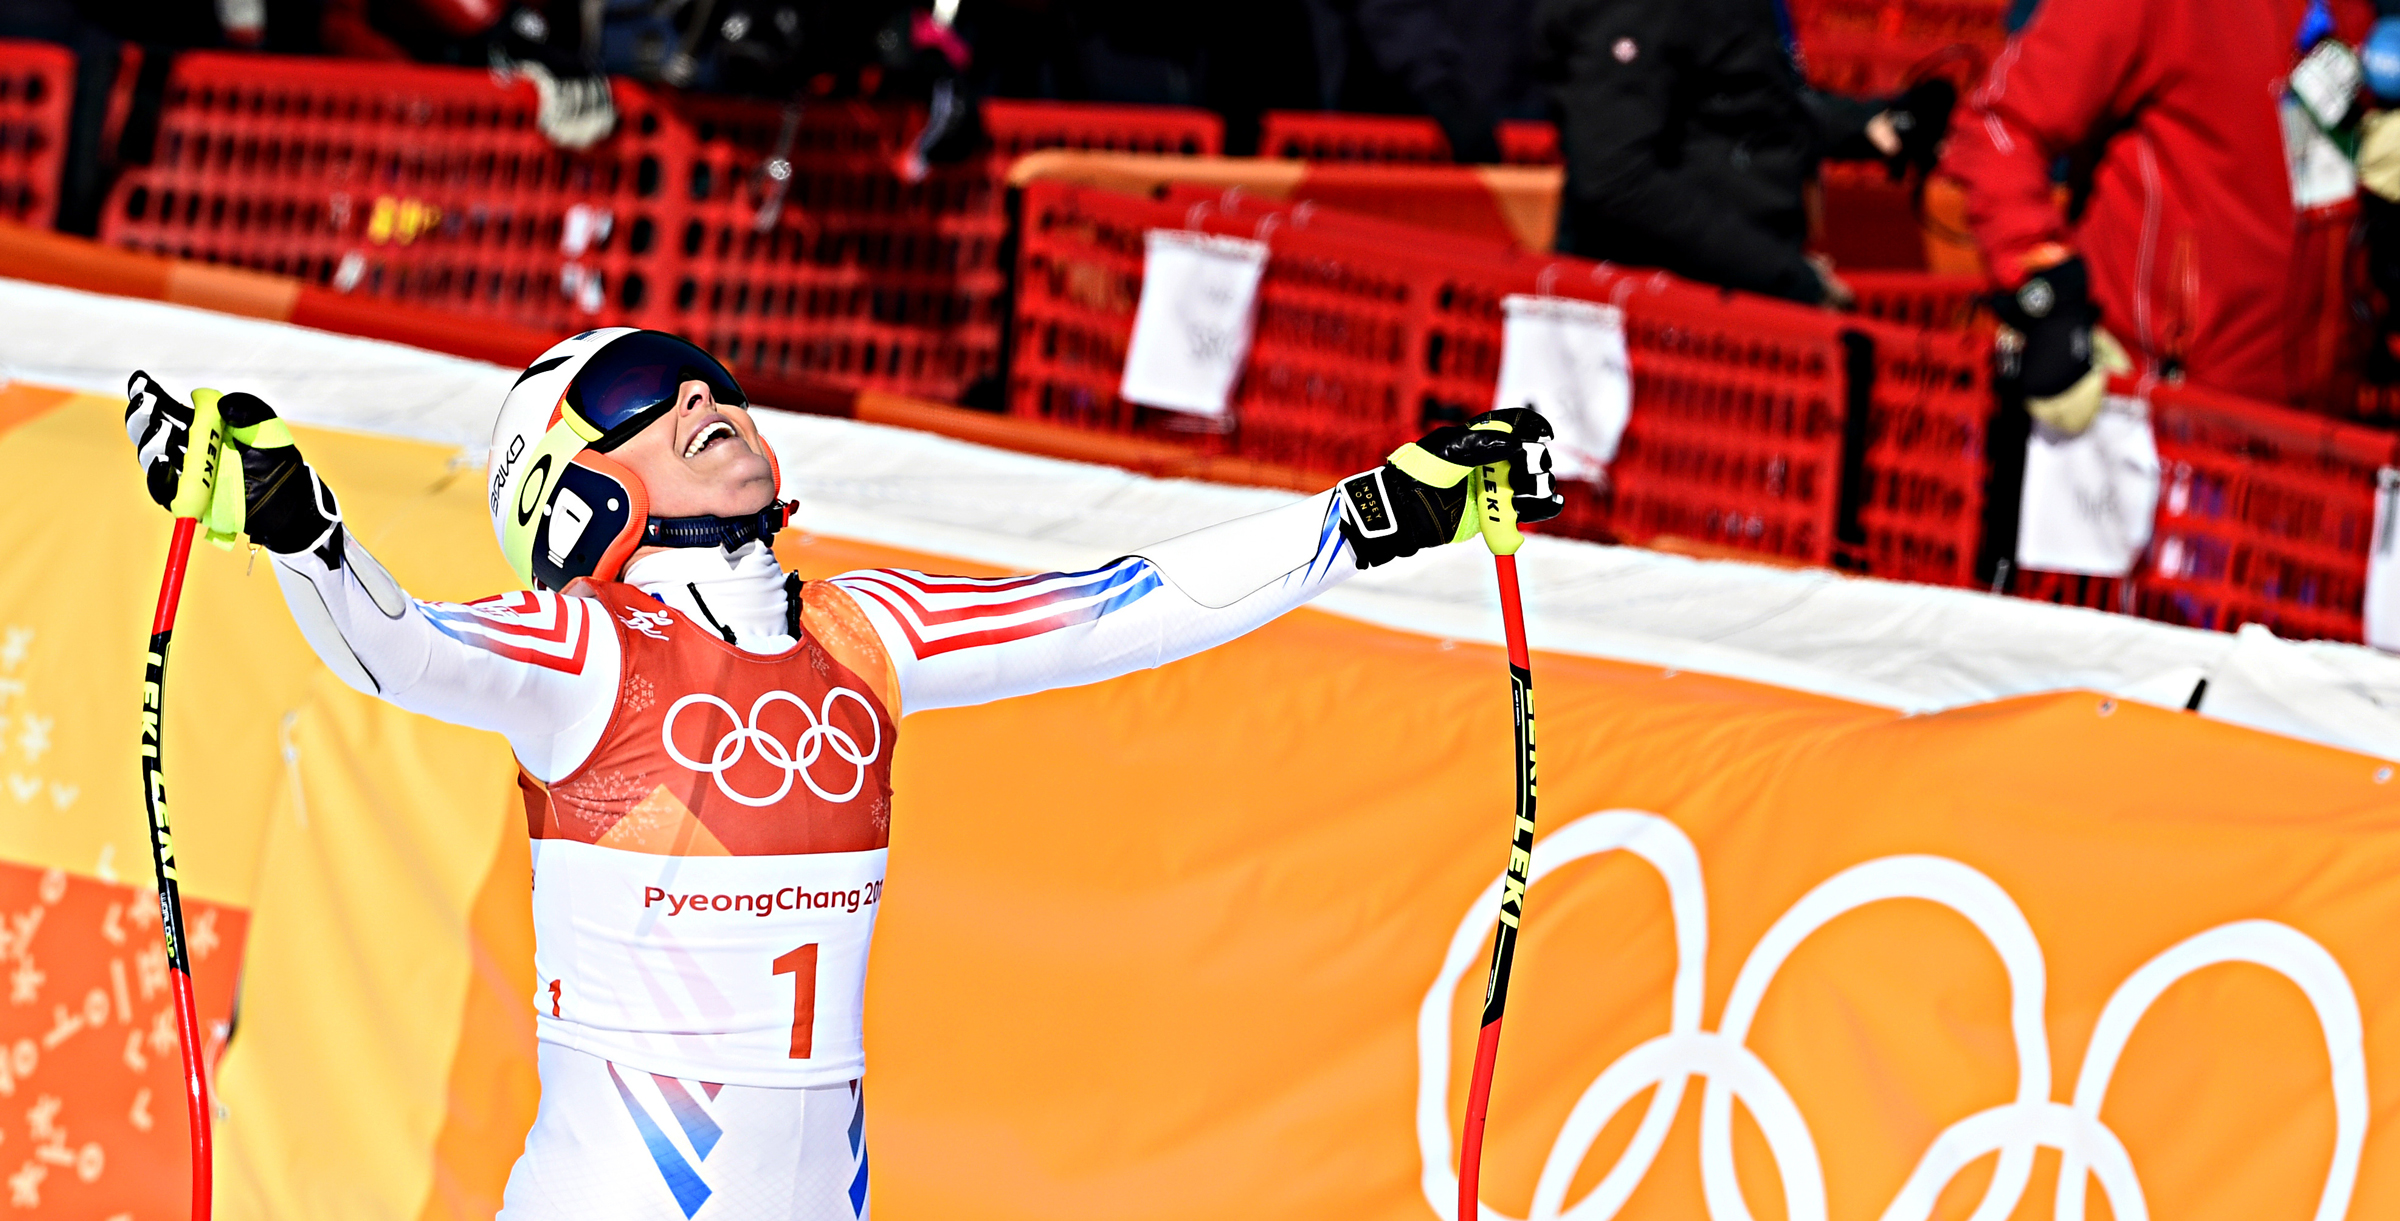 Lindsey Vonn wonders what could have been after crossing the finish line in the super-G. (Getty Images/Agence Zoom - Alain Grosclaude)